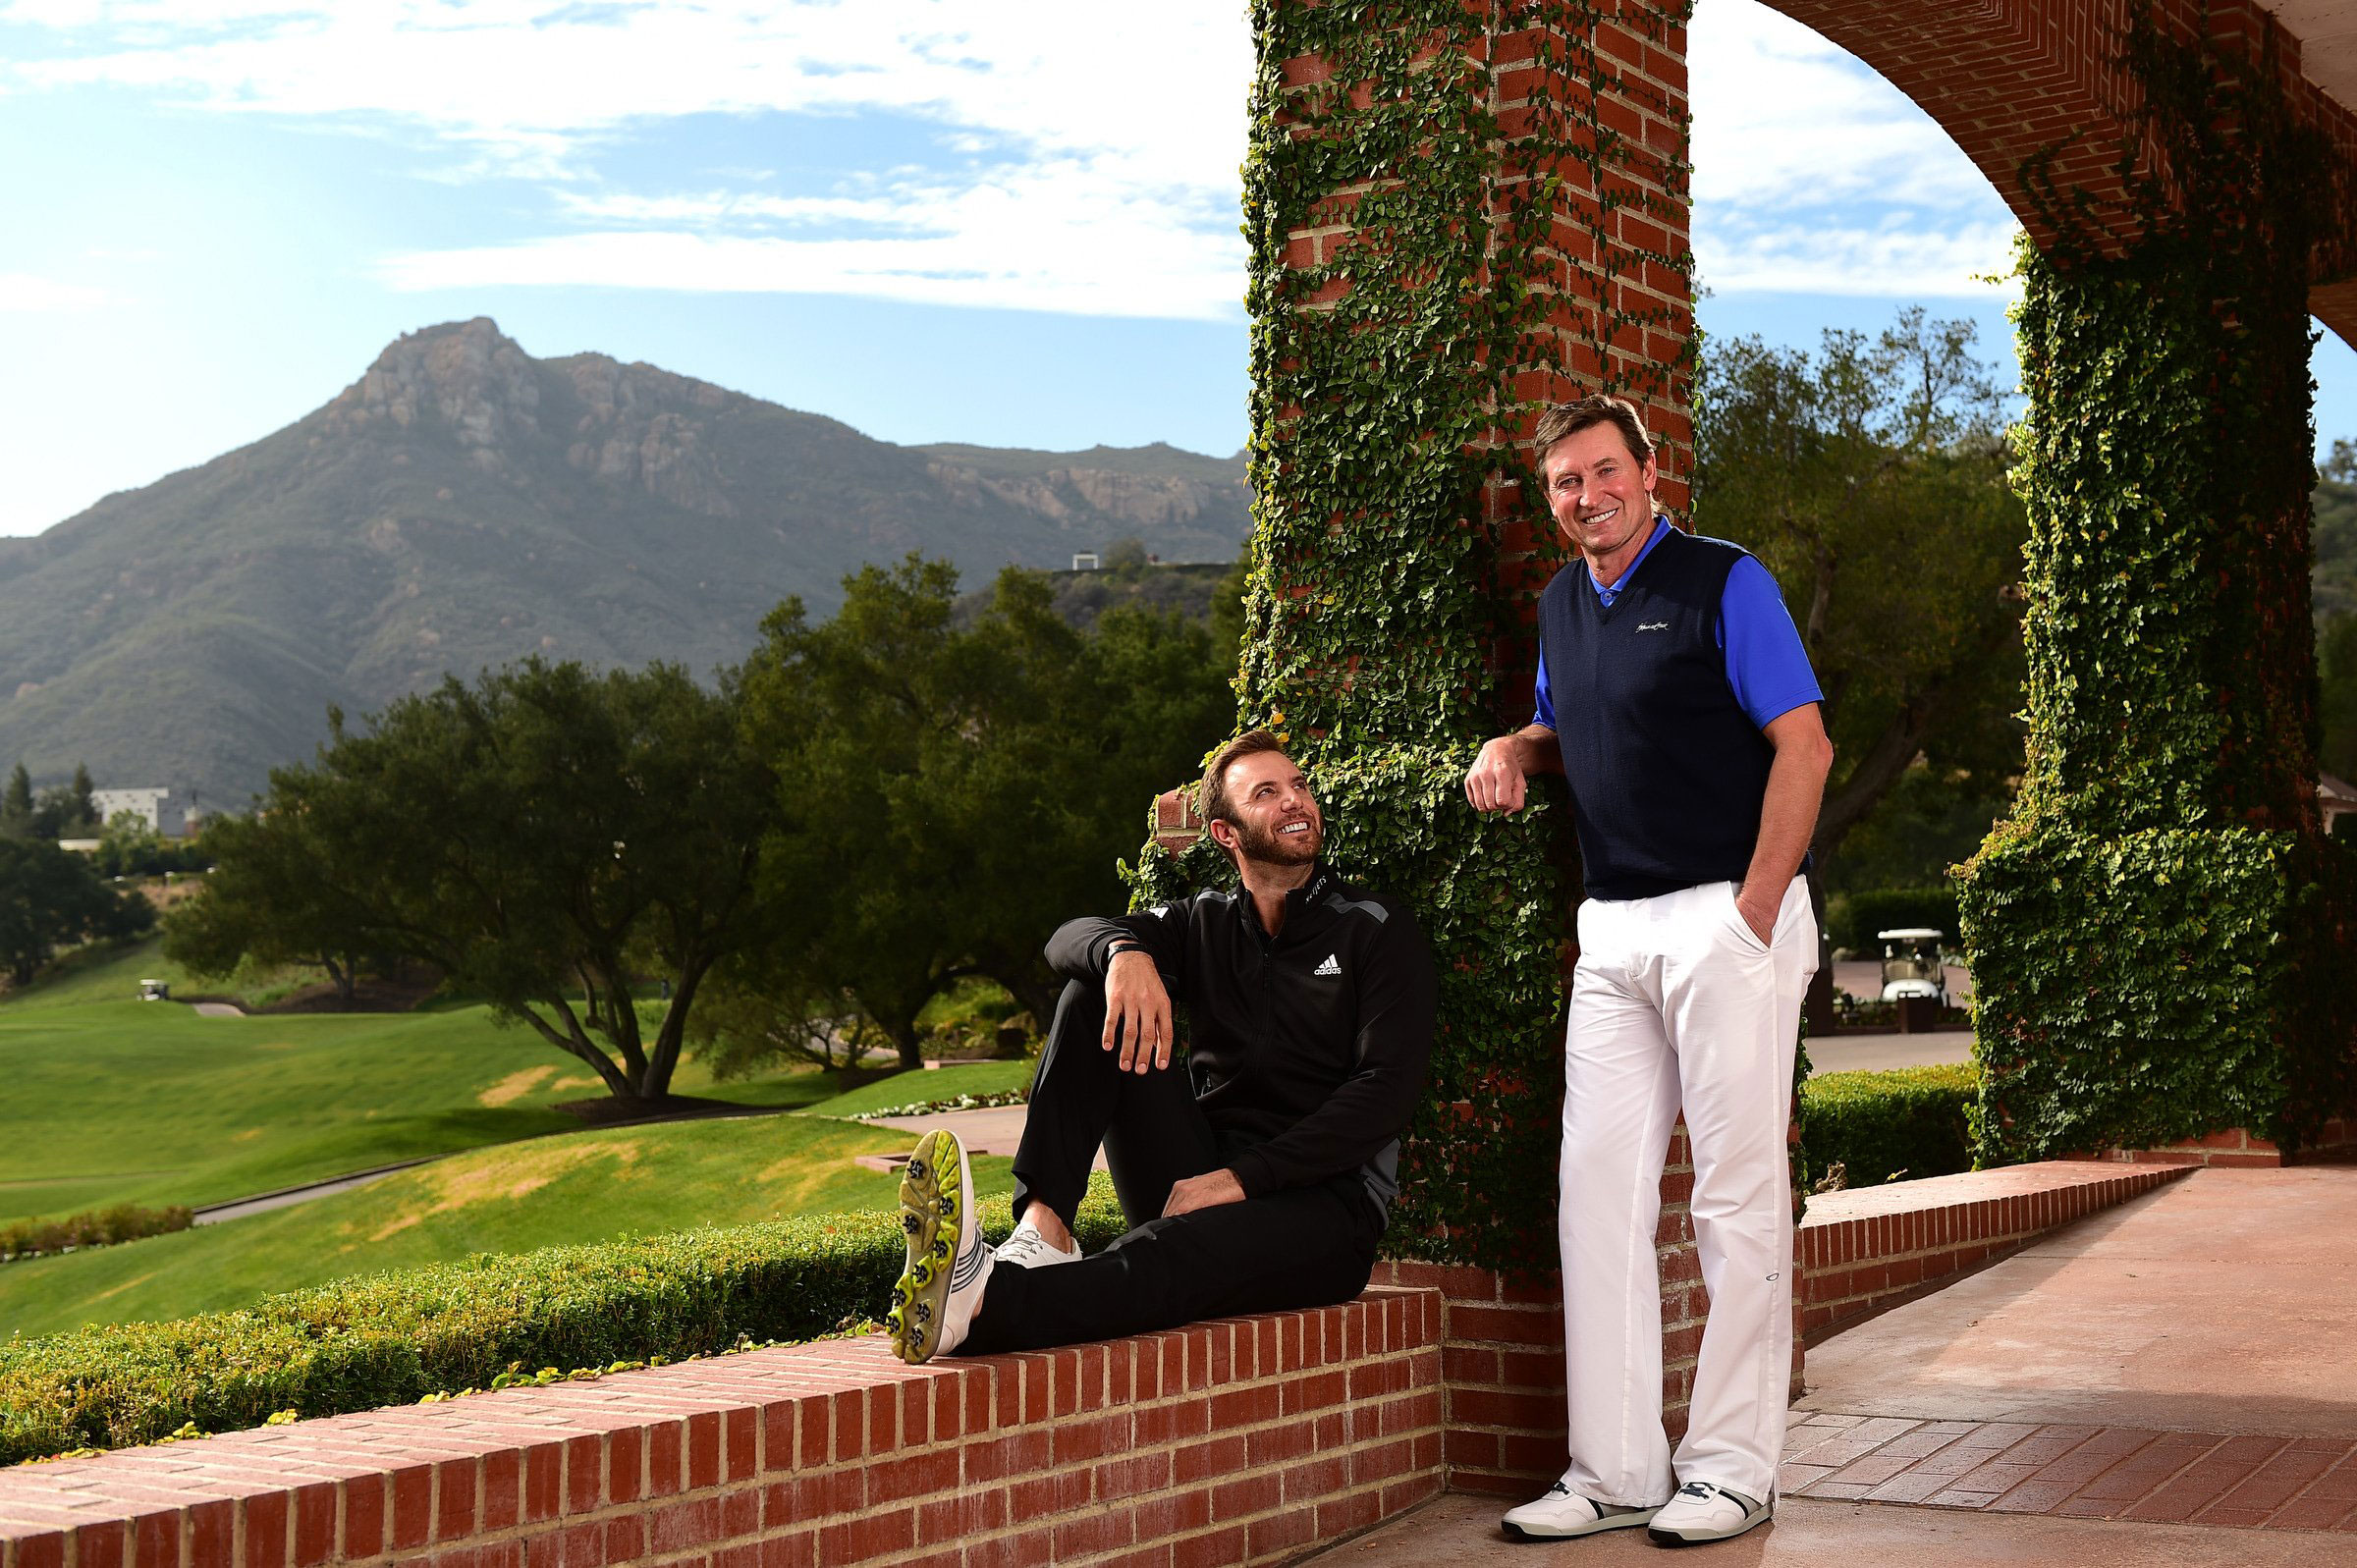 In Wayne Gretzky, Dustin Johnson has a father figure who can teach him a thing or two about handling fame.